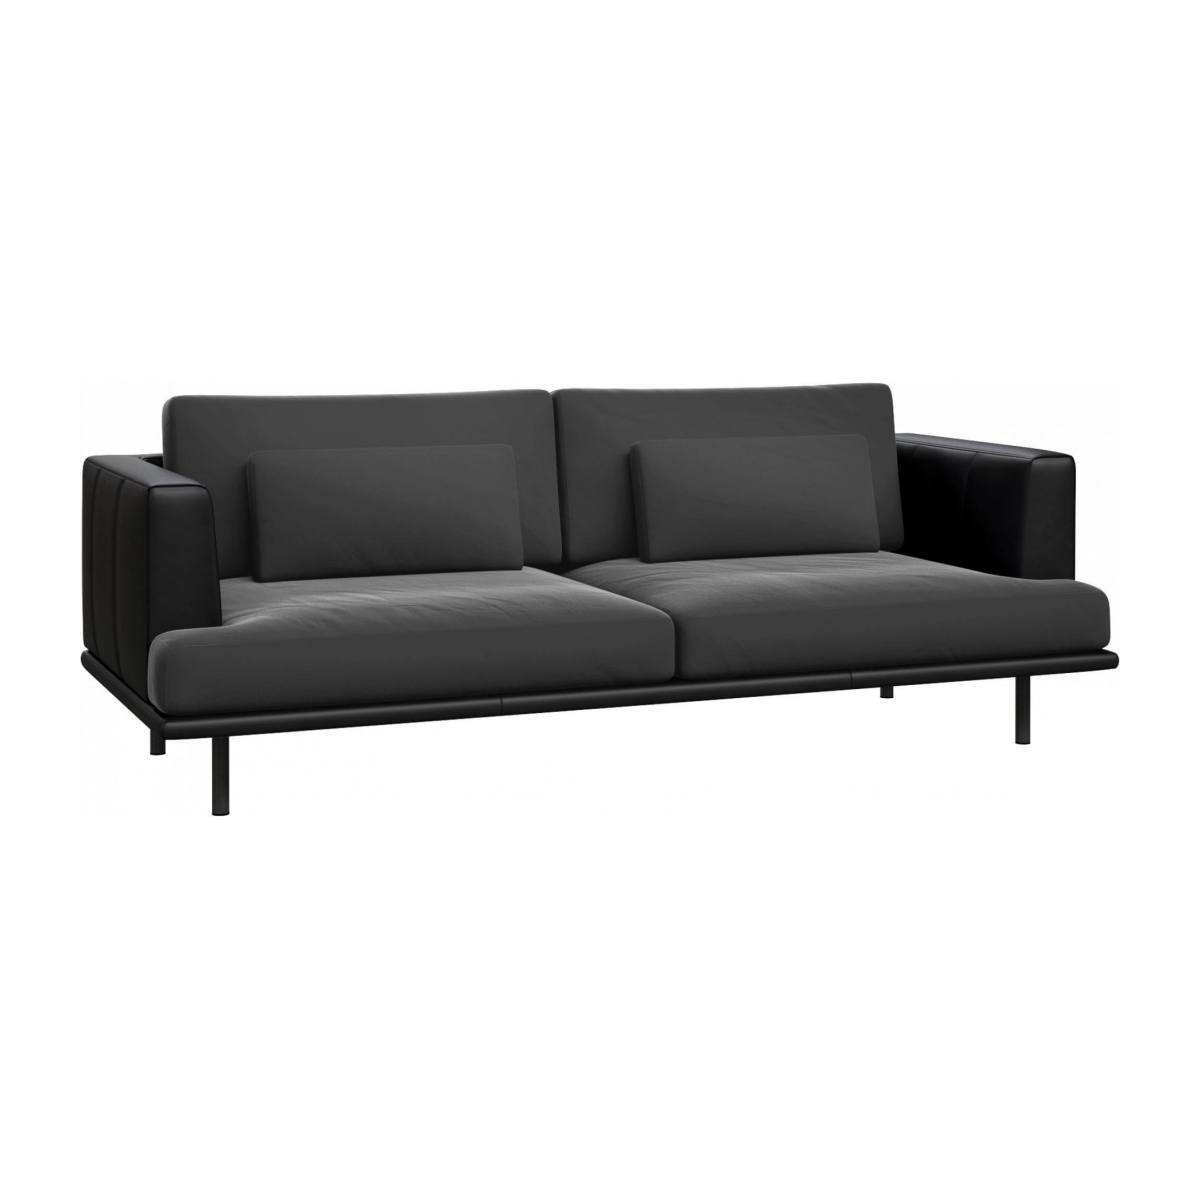 3 seater sofa in Super Velvet fabric, silver grey with base and armrests in black leather n°3